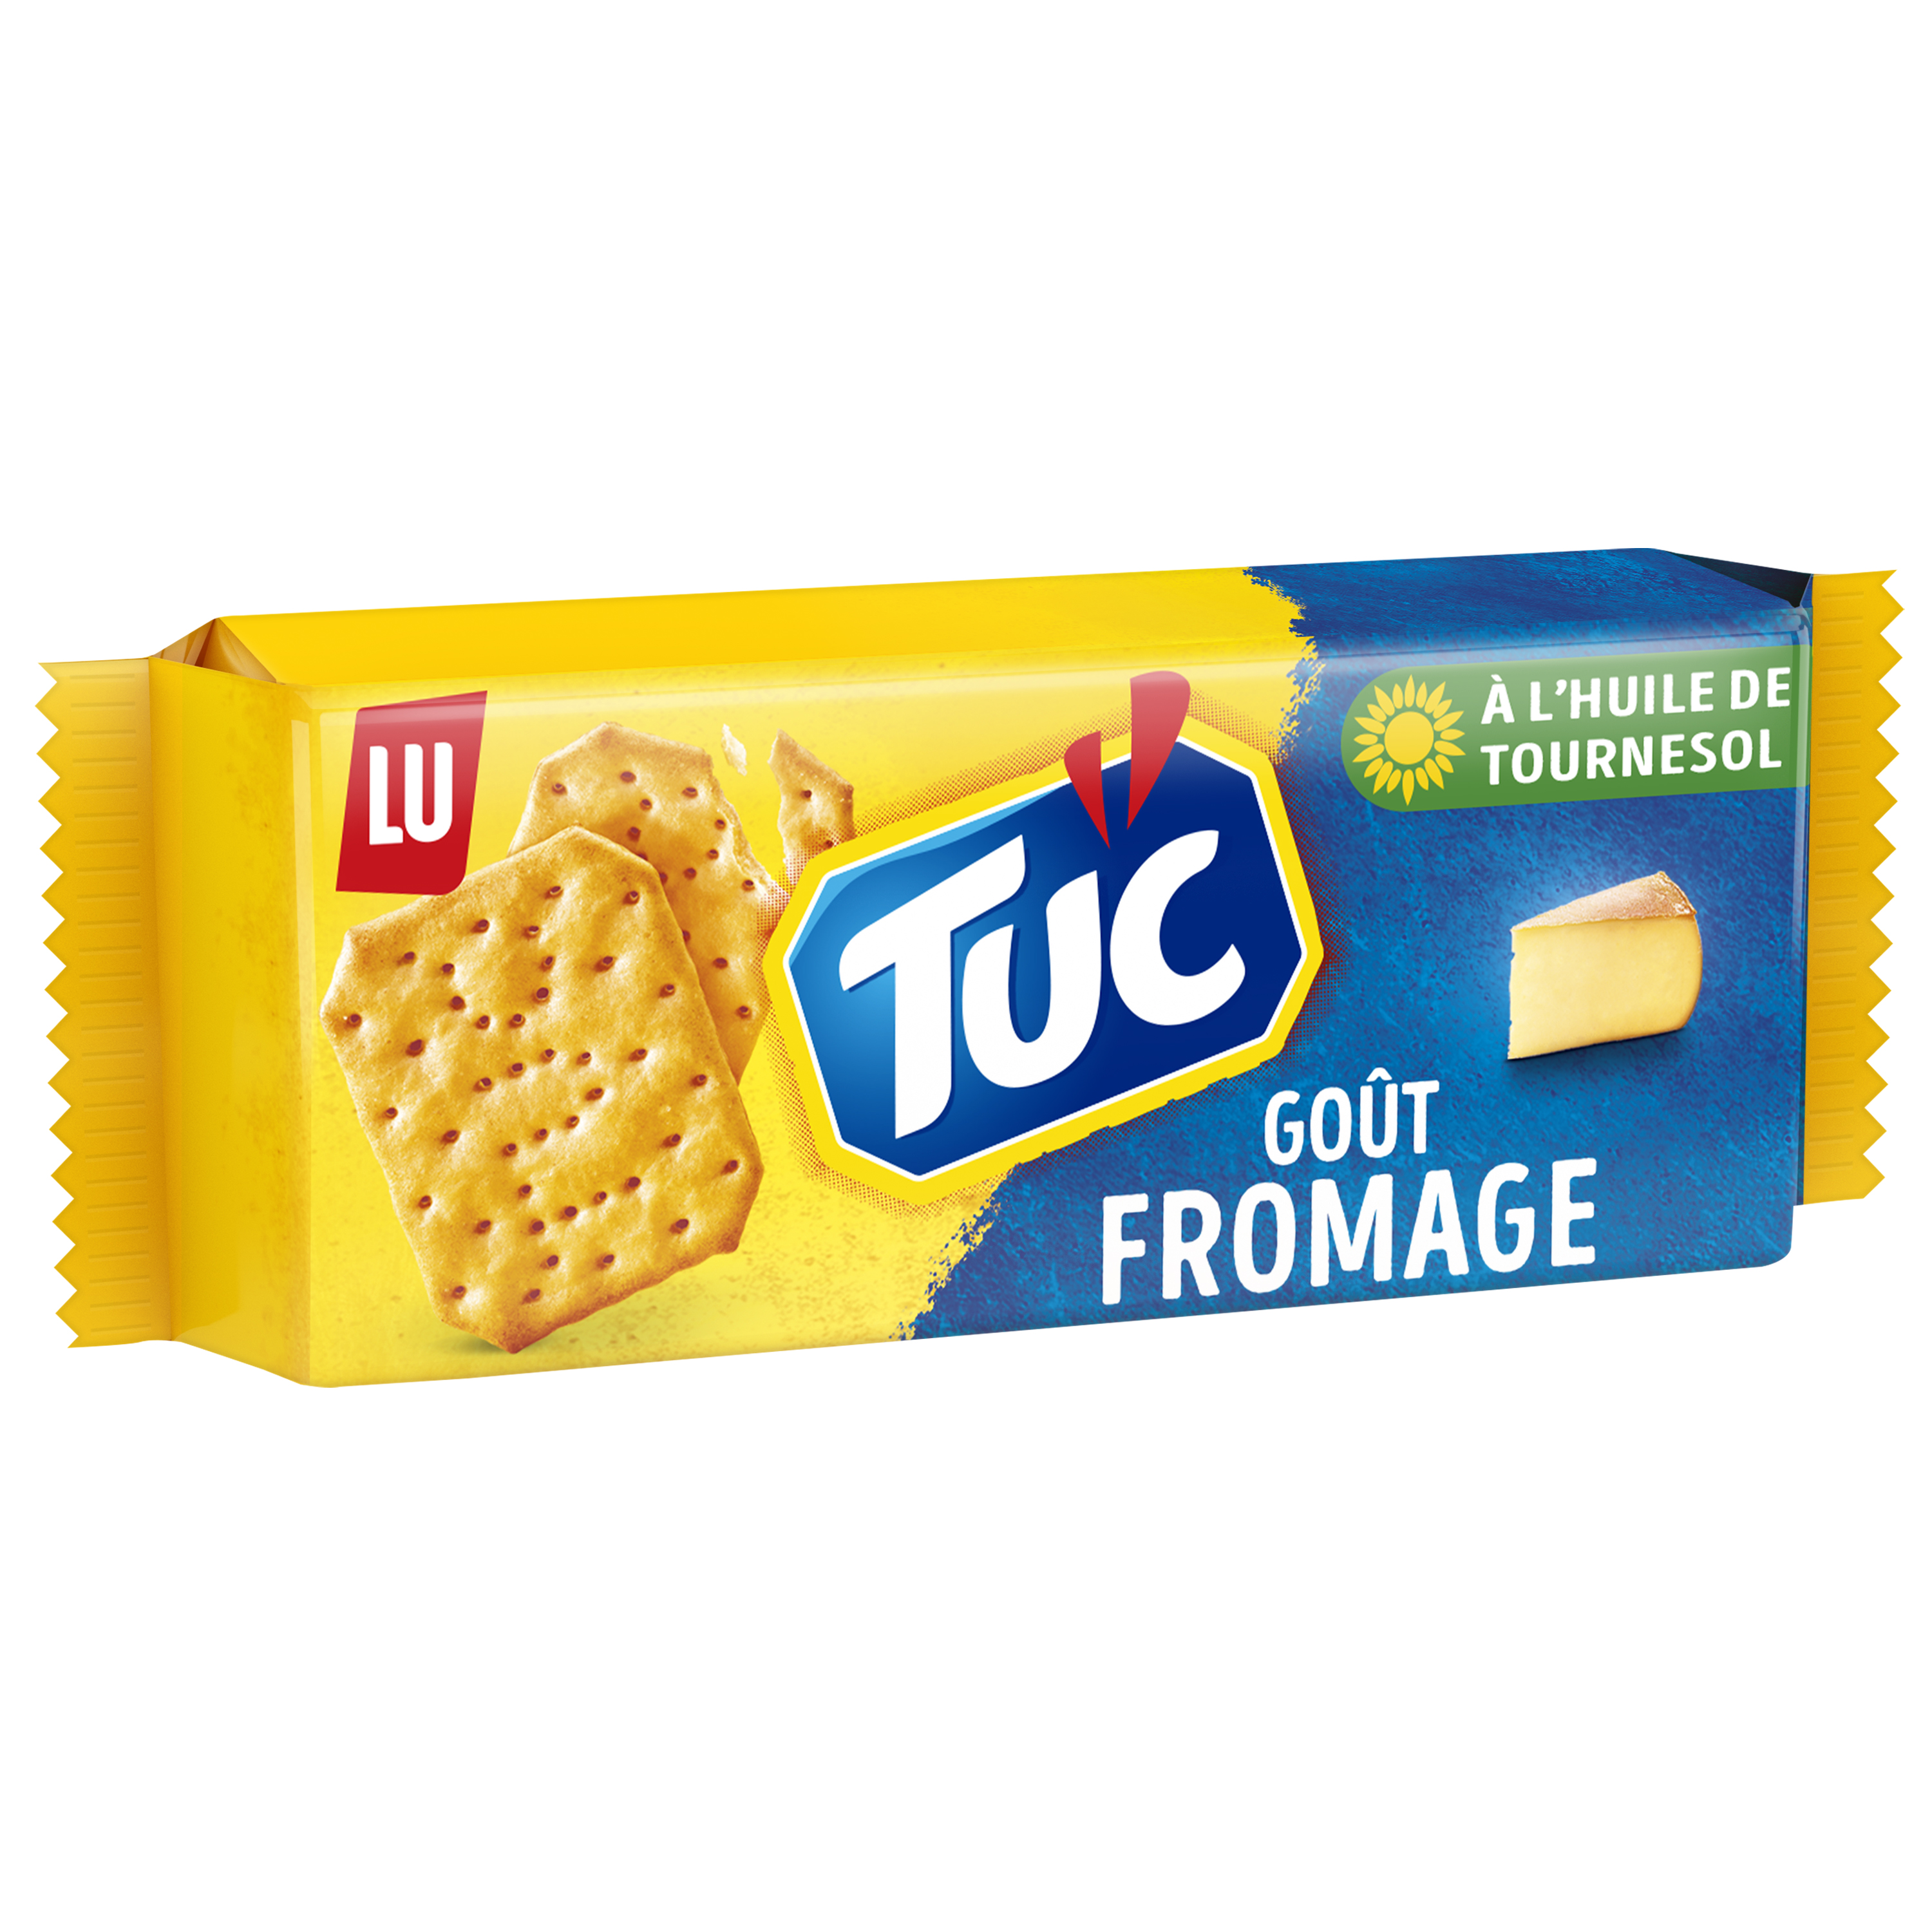 Crackers Tuc au fromage (100 g)